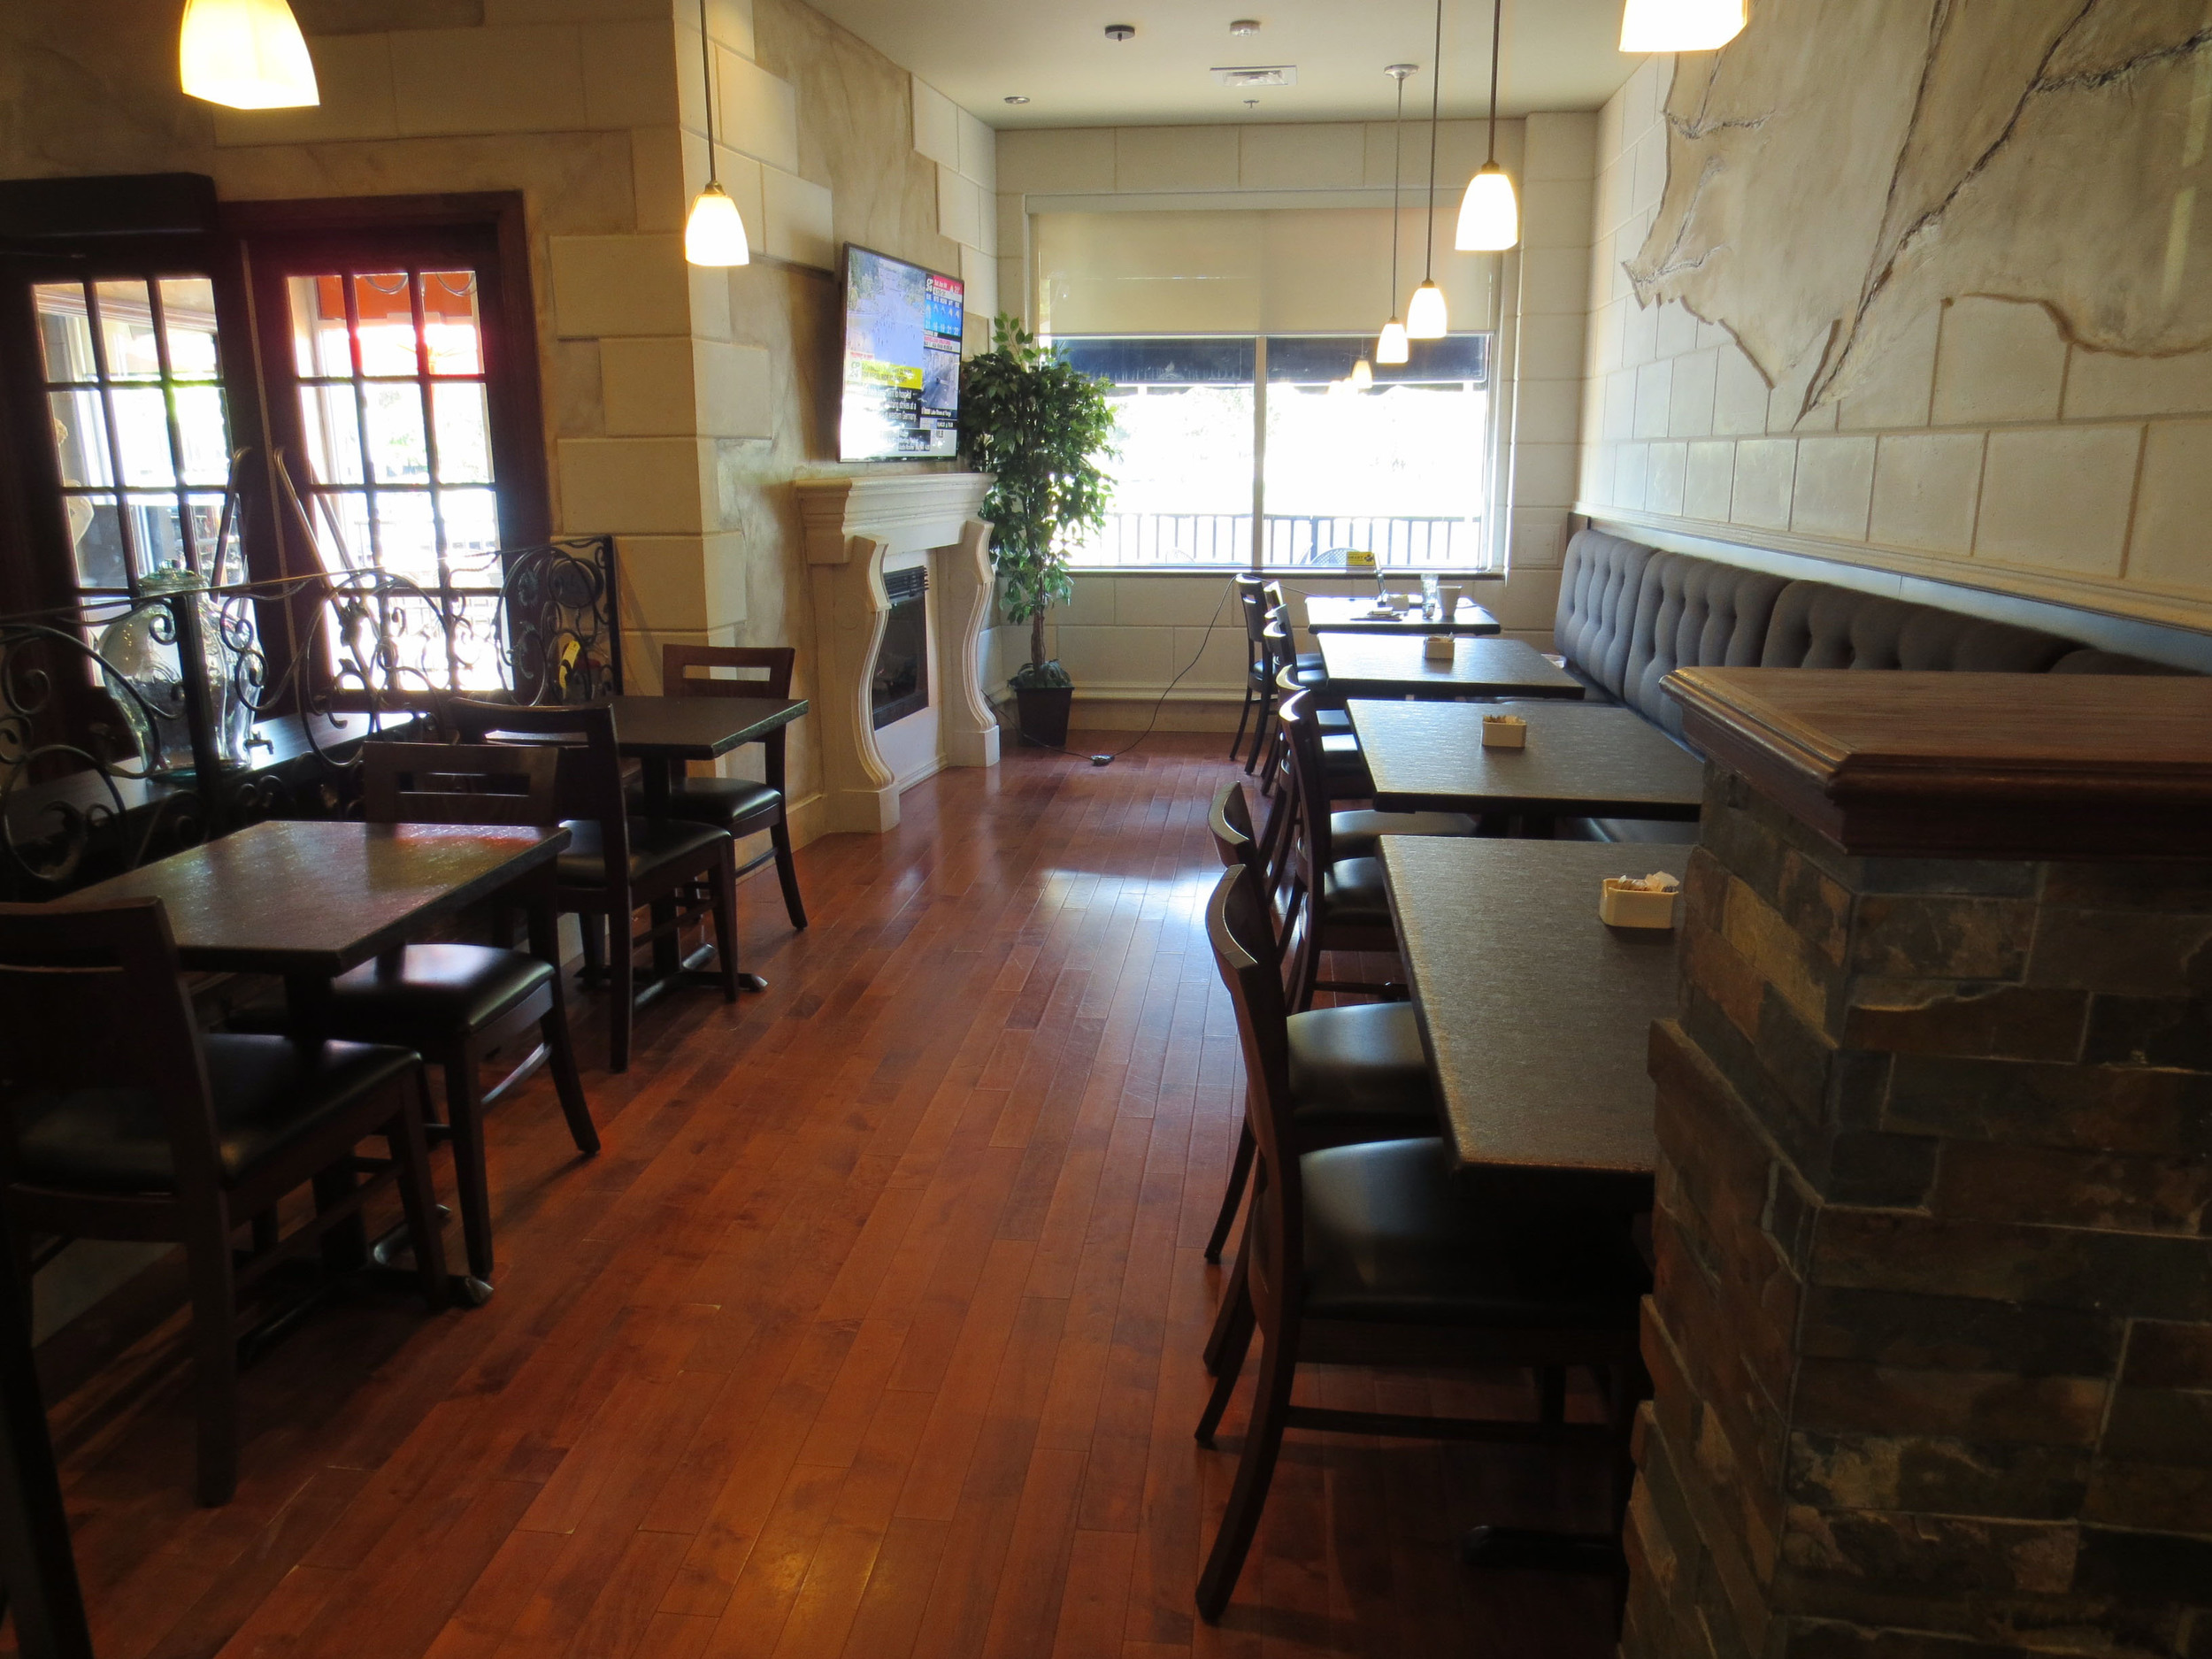 Picture of front dining area with a wide pathway